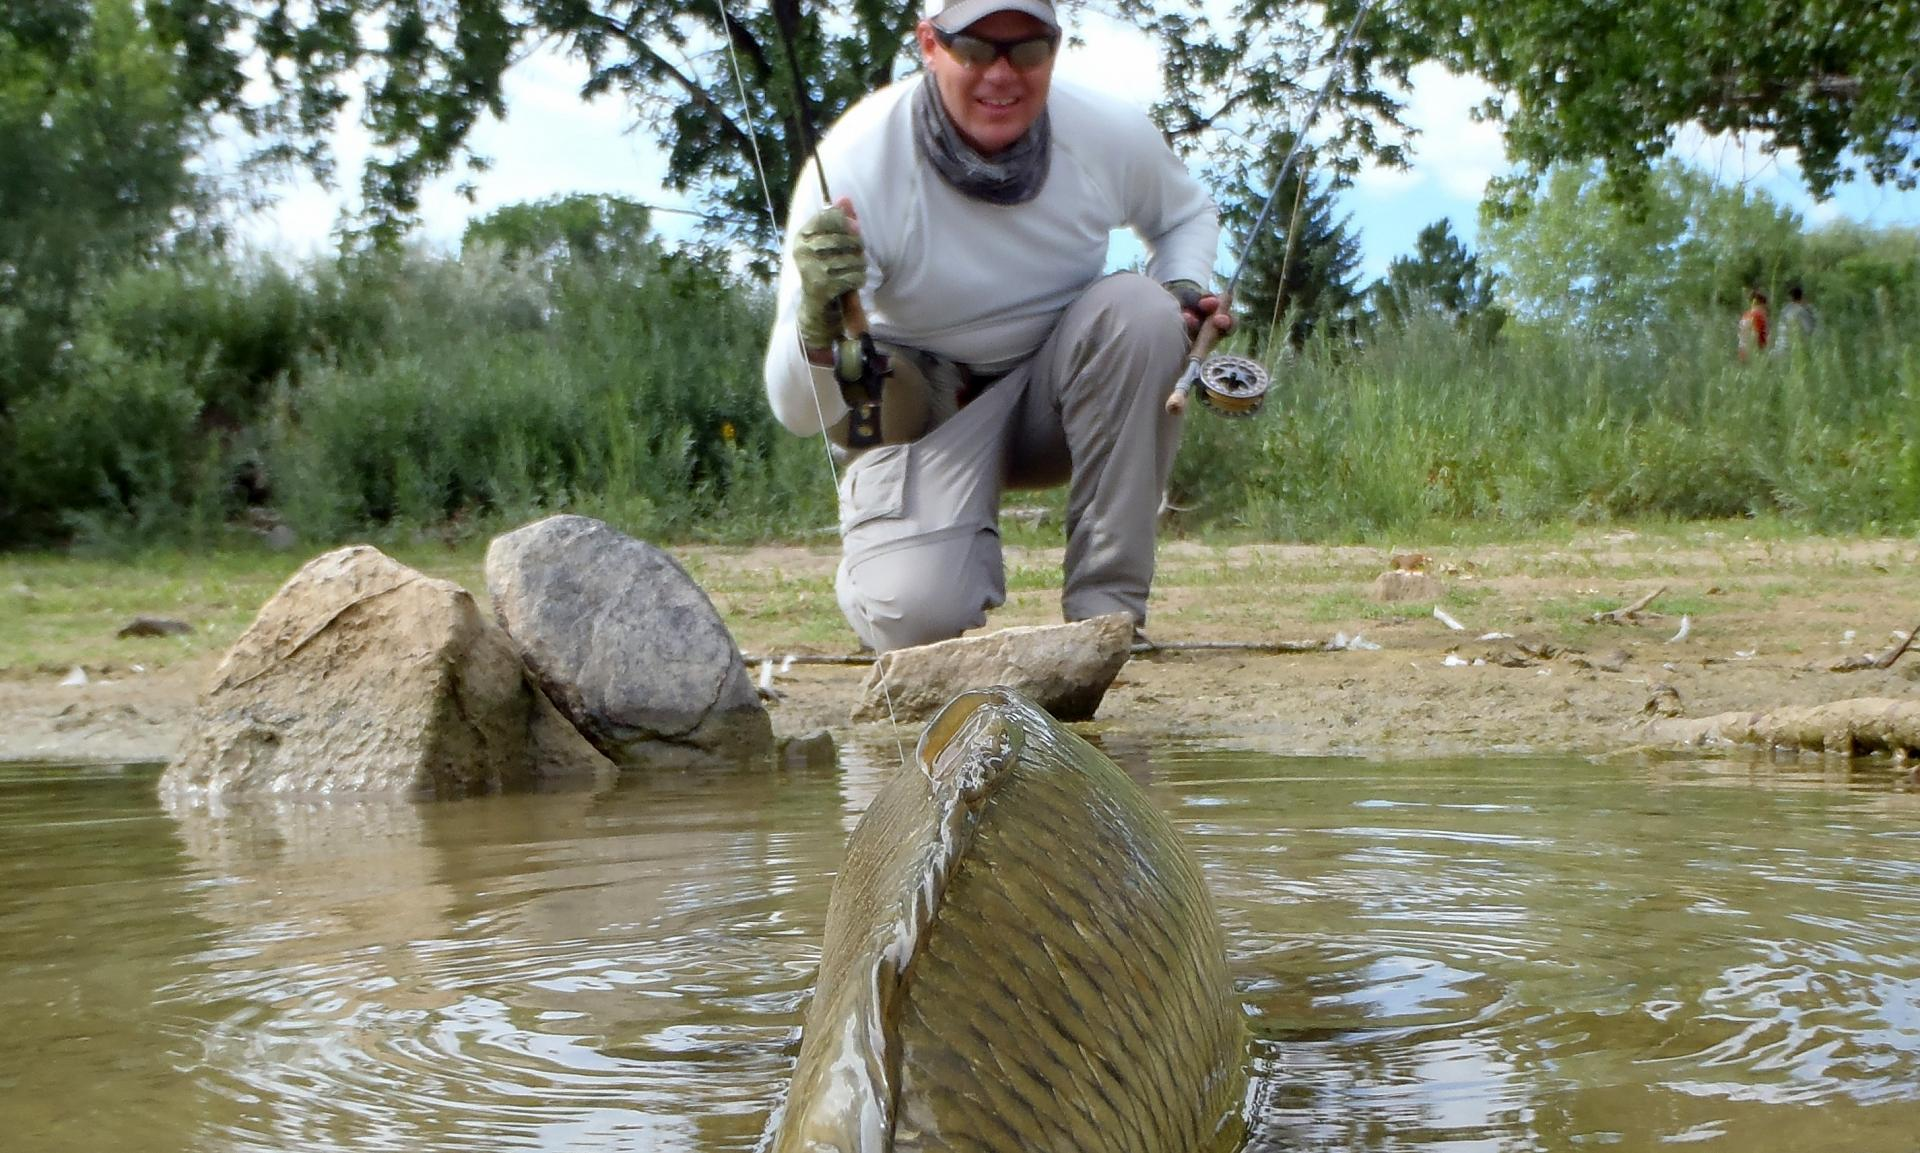 Expert secrets revealed: How to sight-fish for carp on the fly